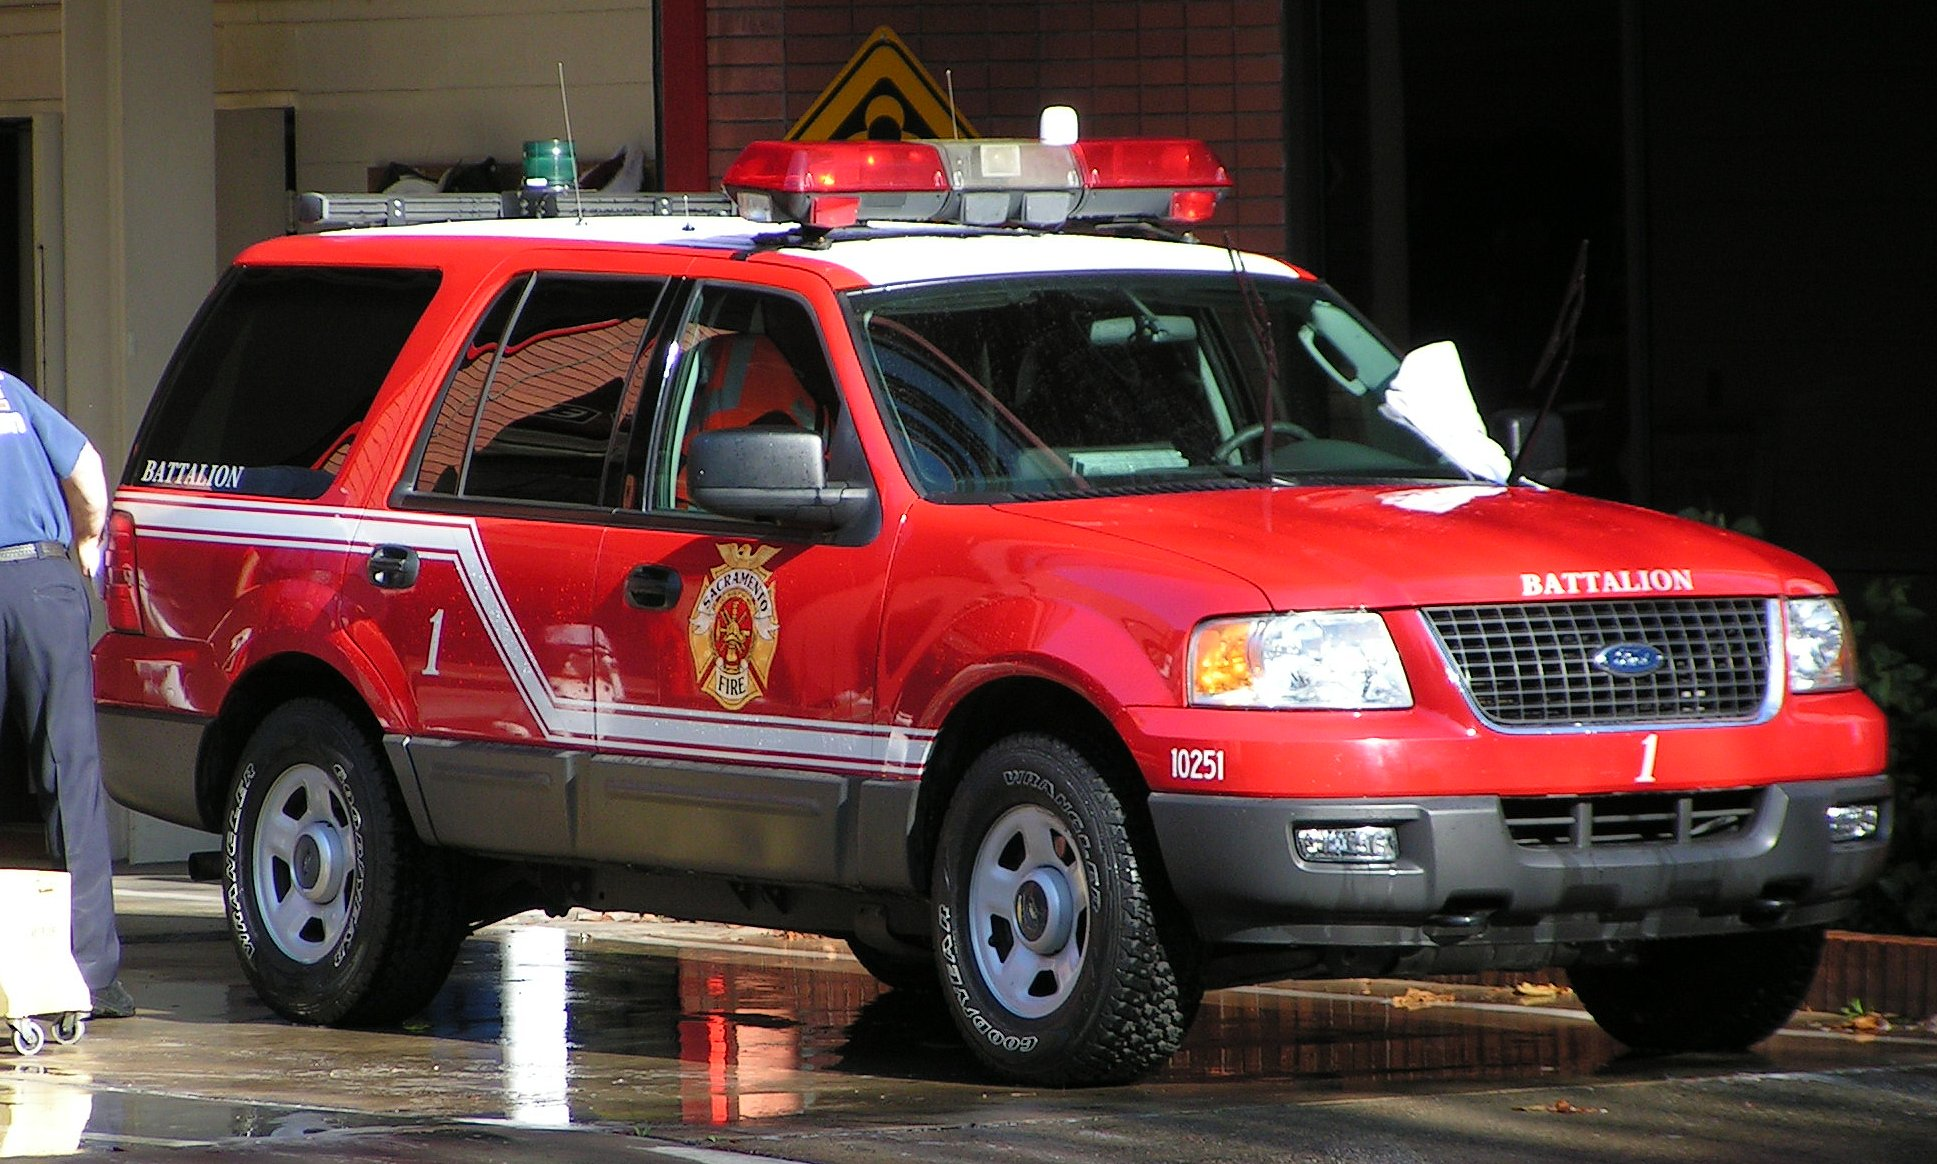 CA, Sacramento Fire Department Command Car